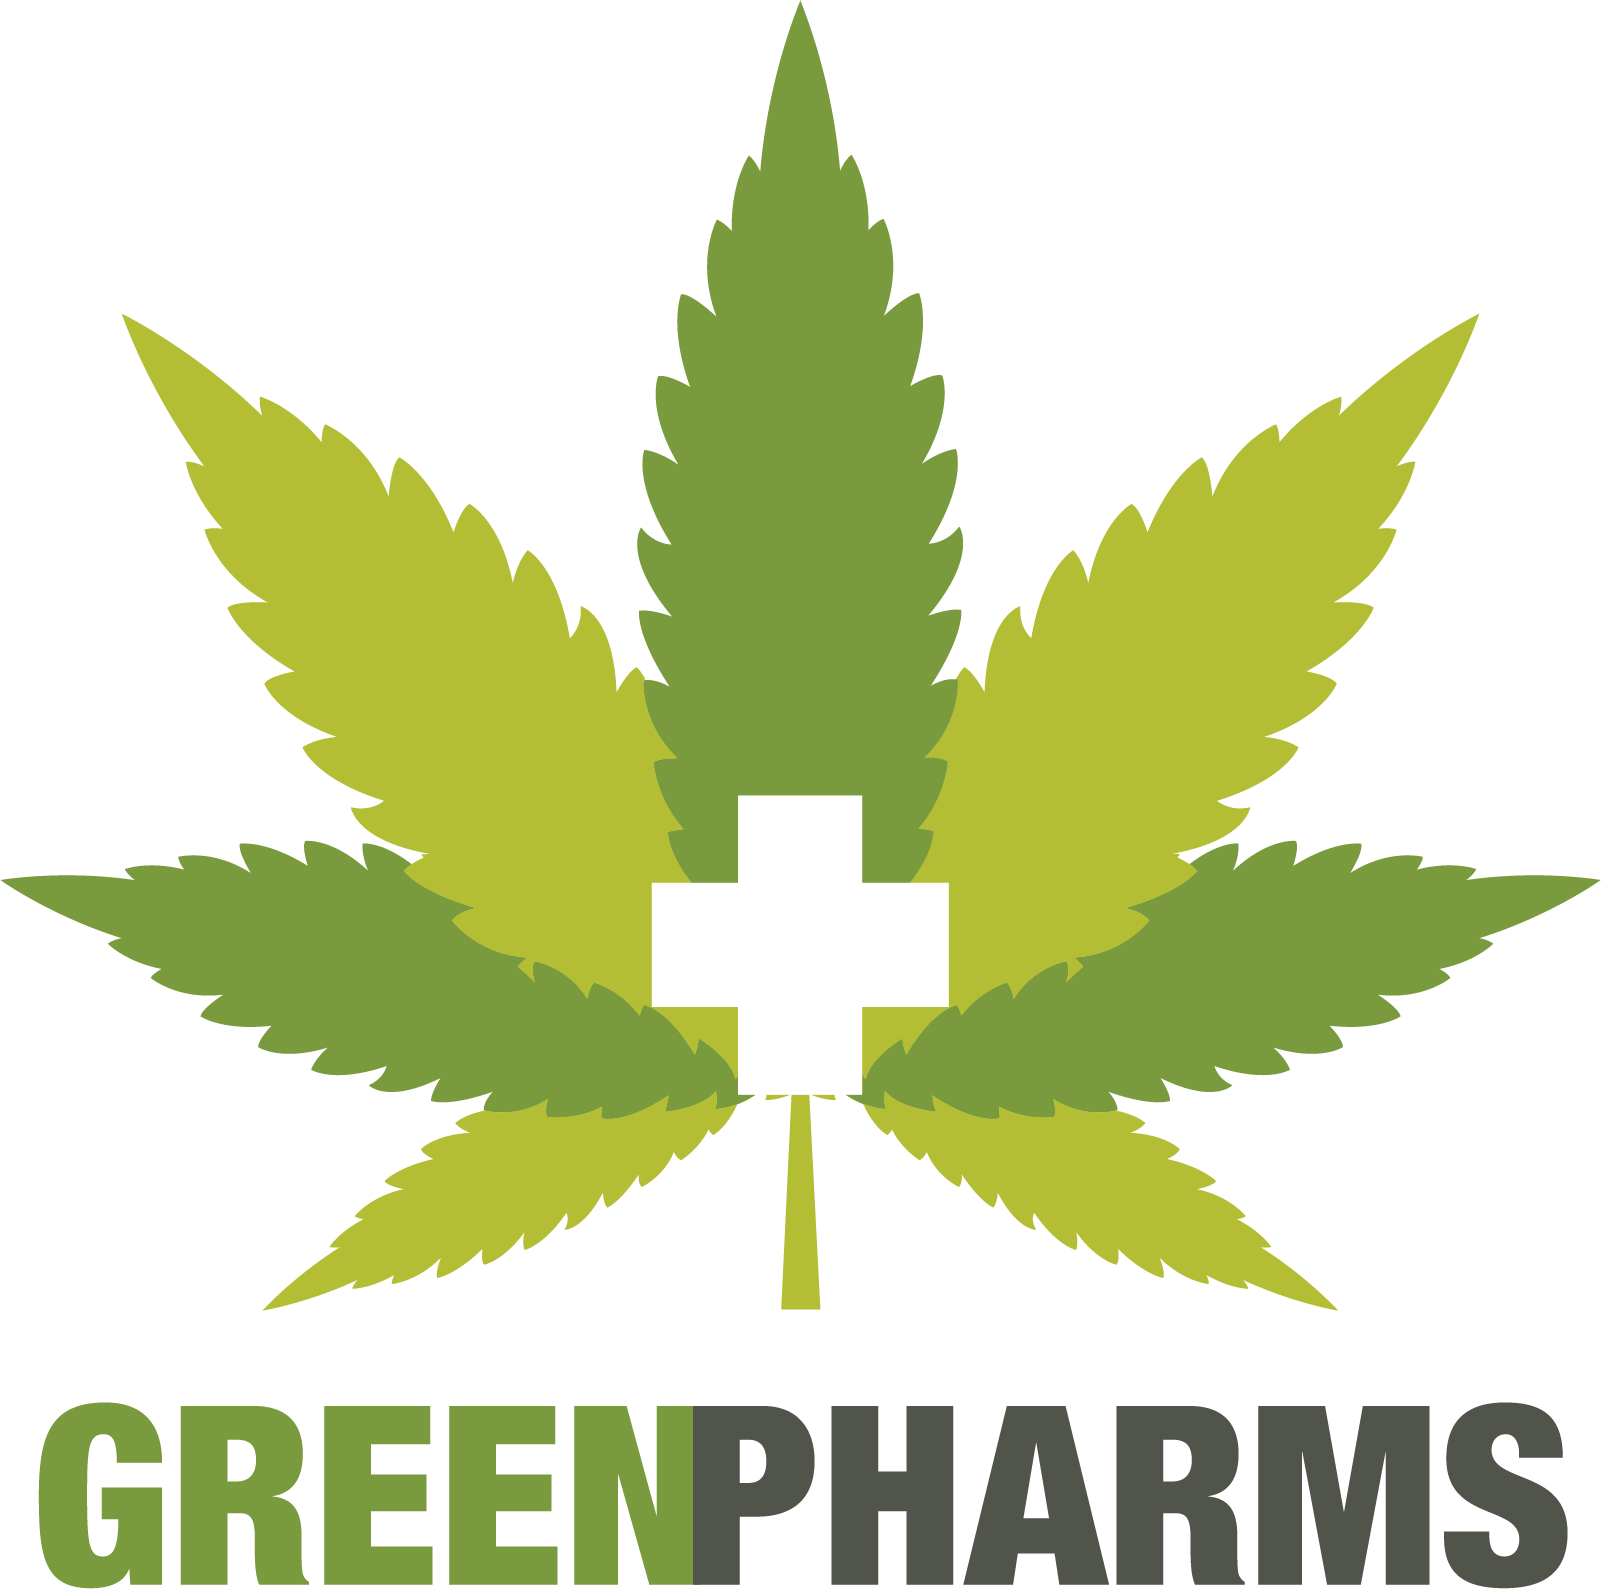 GreenPharms